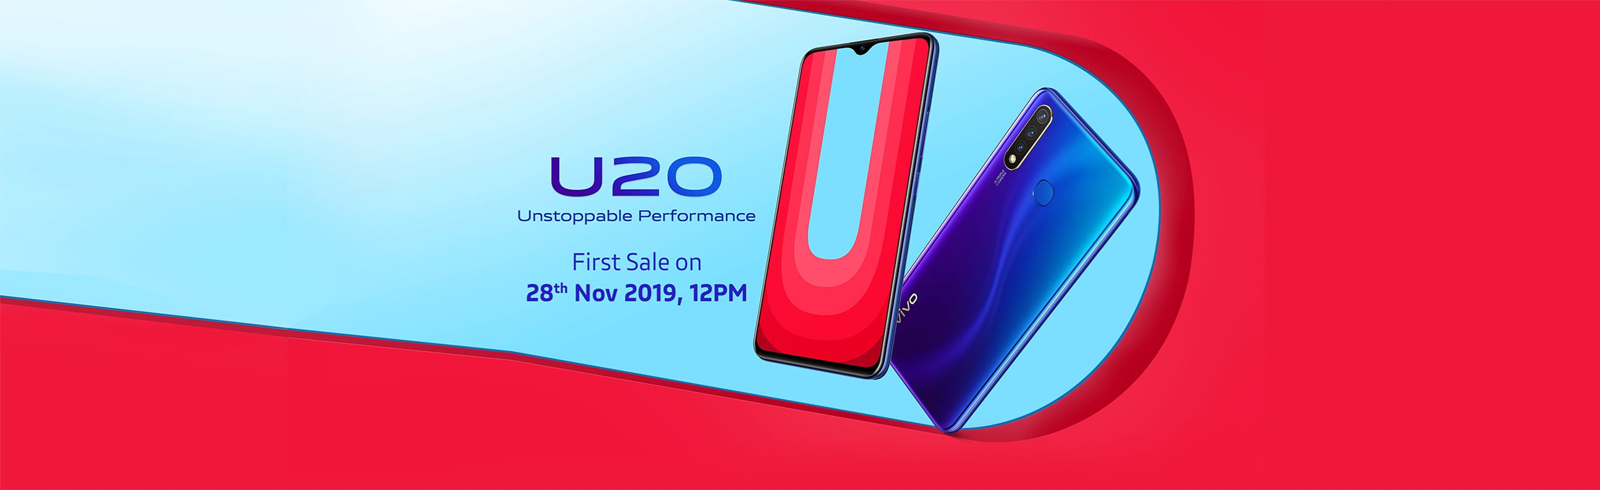 Vivo India launches the Vivo U20 with a 5000 mAh battery and a Snapdragon 675 chipset